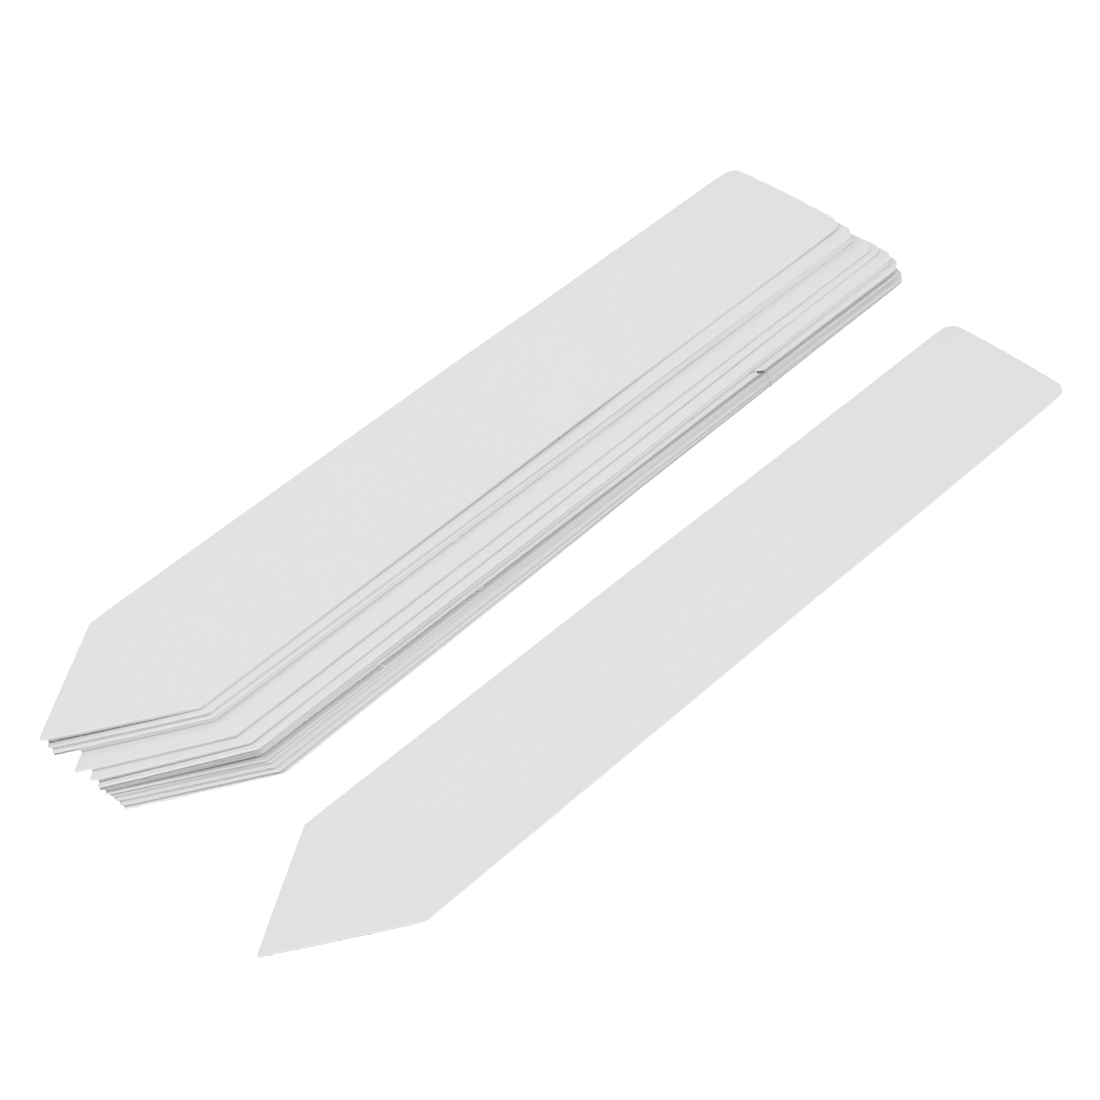 20cmx3cm Plastic Nursery Garden Plant Seed Tag Label Marker Stick White 15Pcs